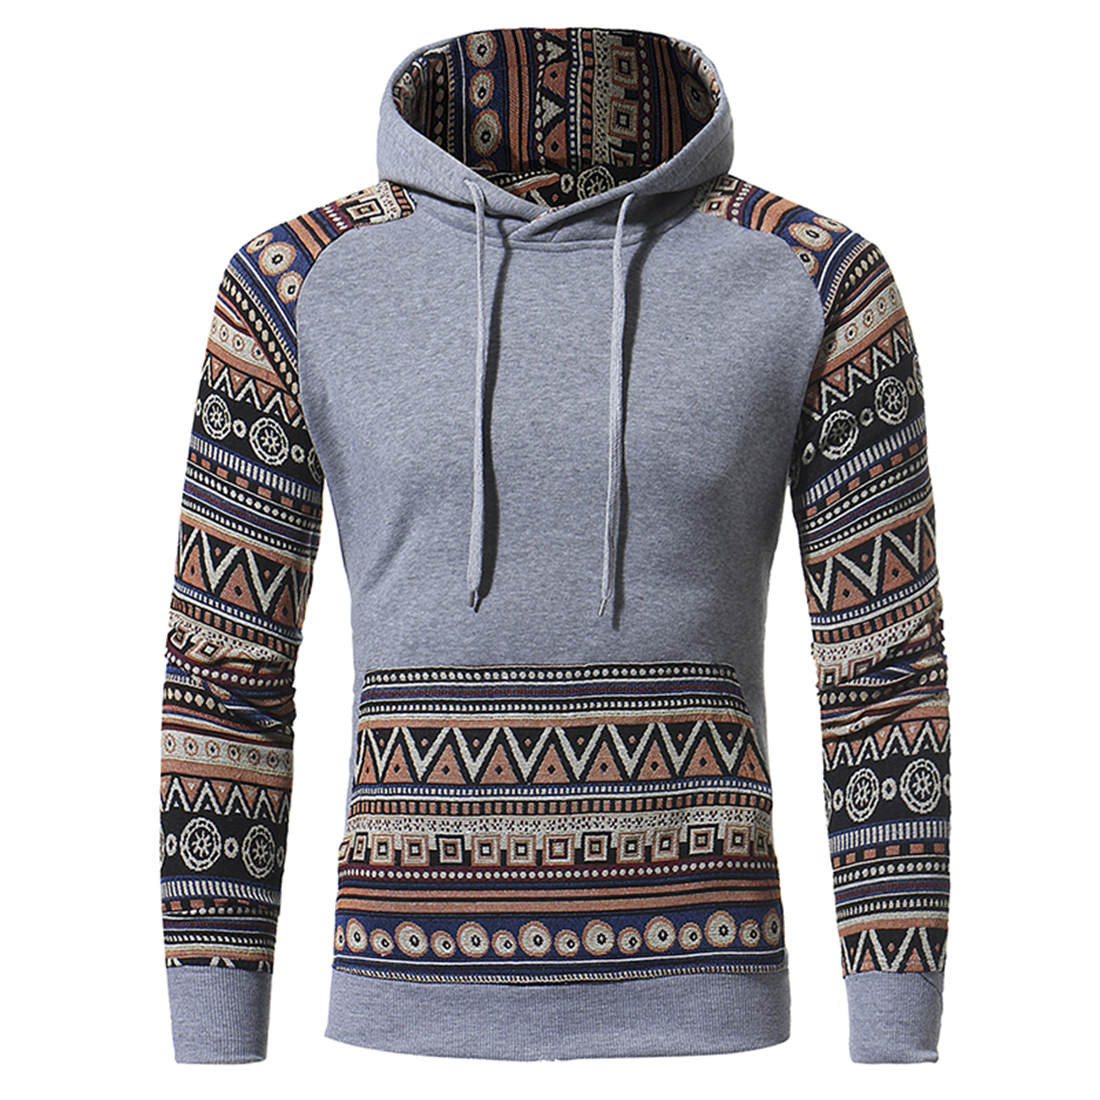 High Quality Mens Autumn Hoodie Hooded Sweatshirt Coat Jacket Outwear Sweats Homens Hoody Boys oversized XXXL Stripe Male Coat